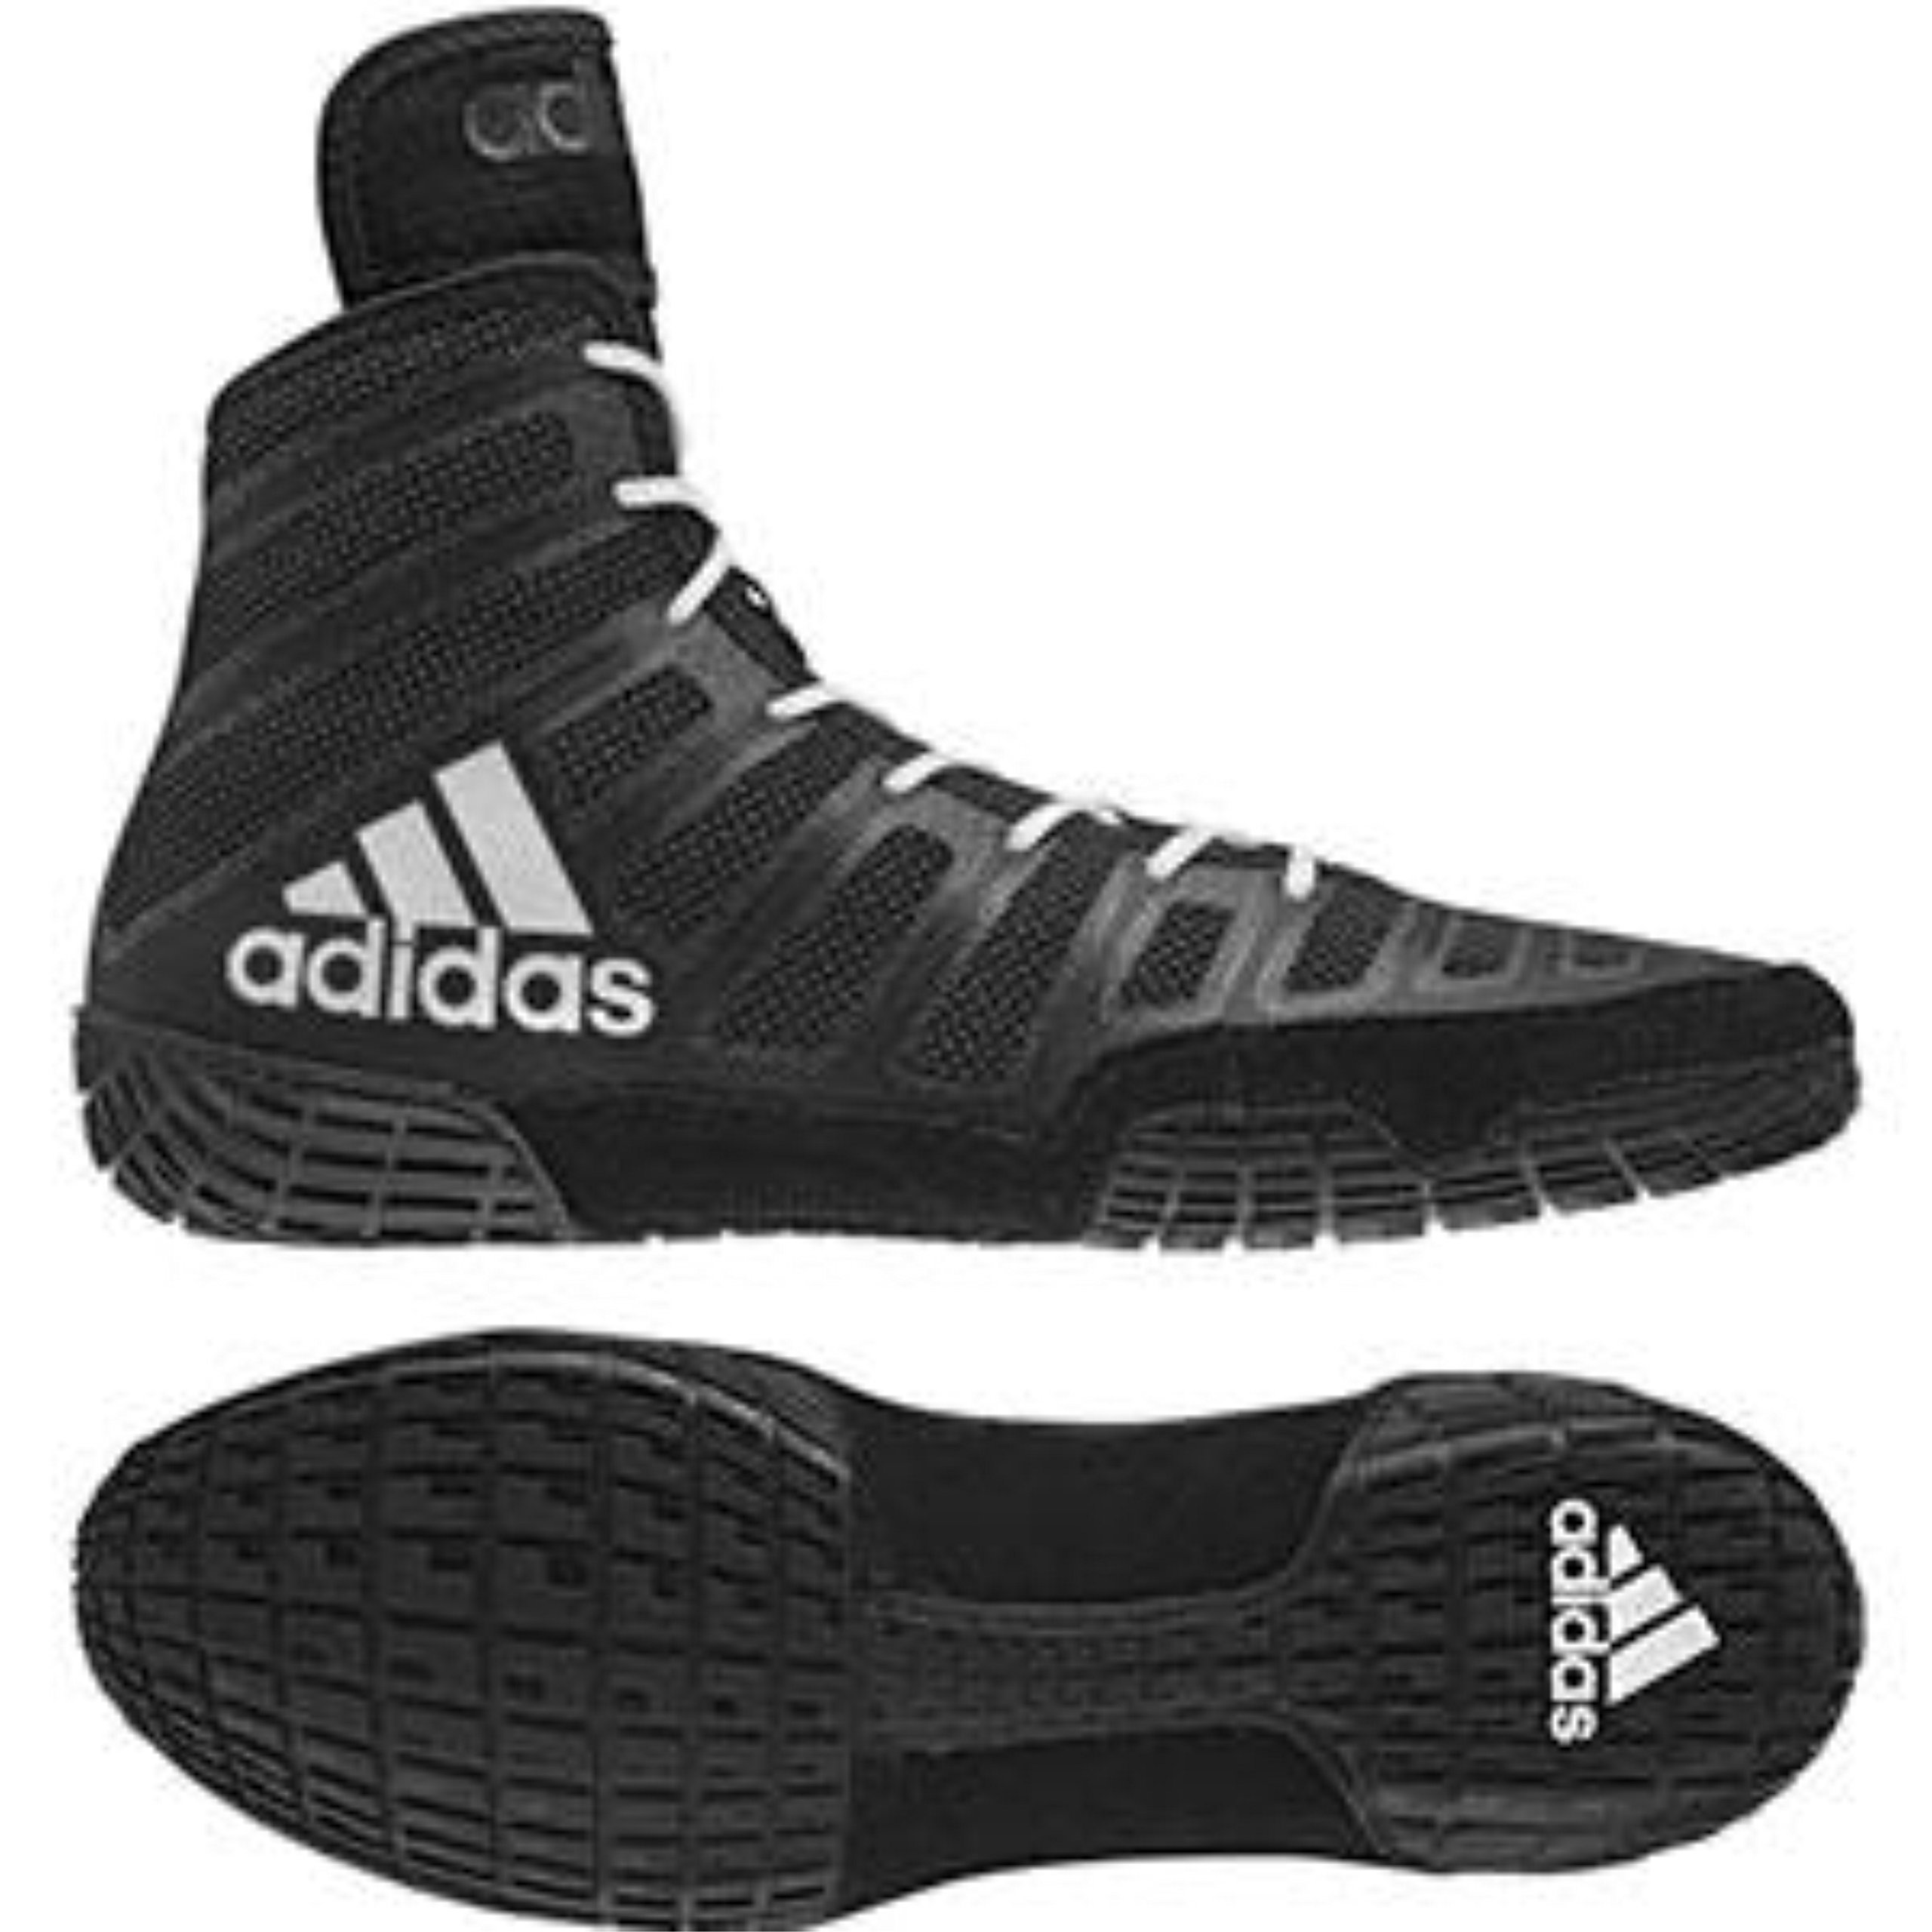 adidas adiZero Varner Mens Wrestling Shoes, Black/White/Black Size 10 by adidas